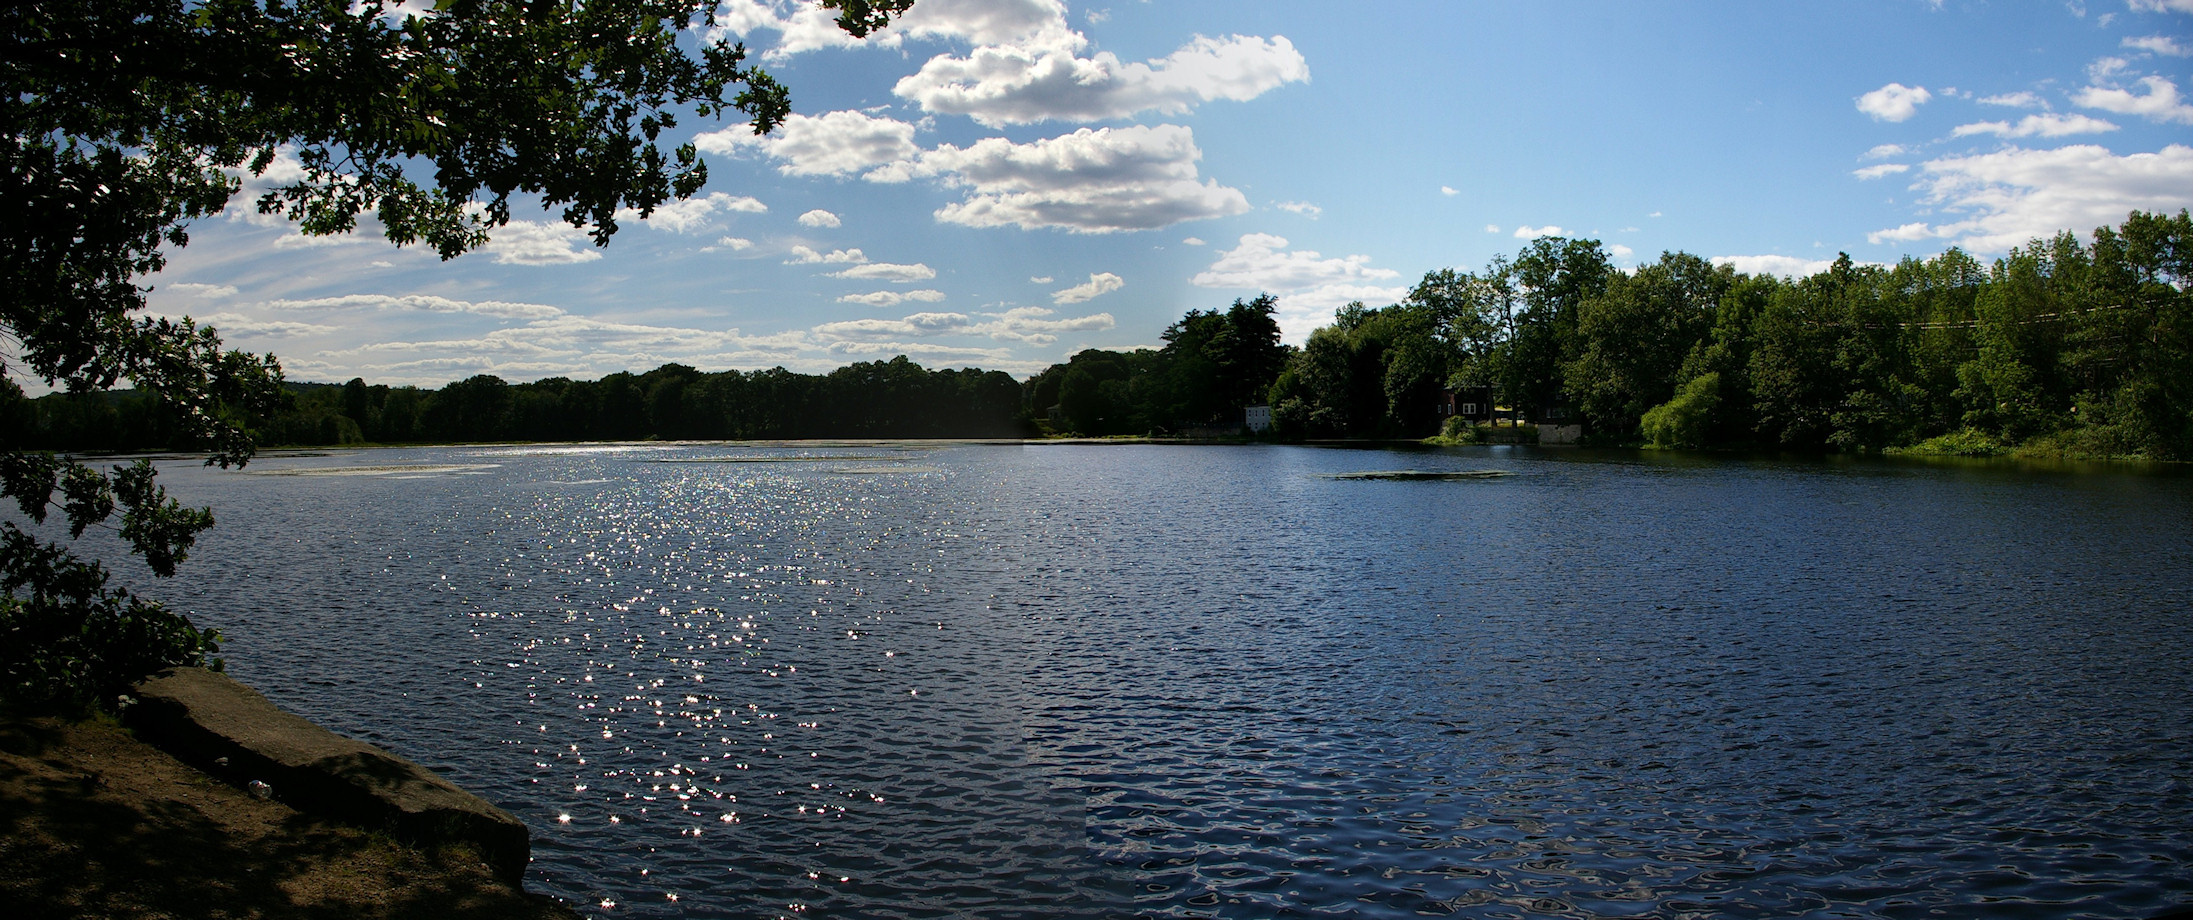 IMGP5404Stitch.jpg - Whitin Pond